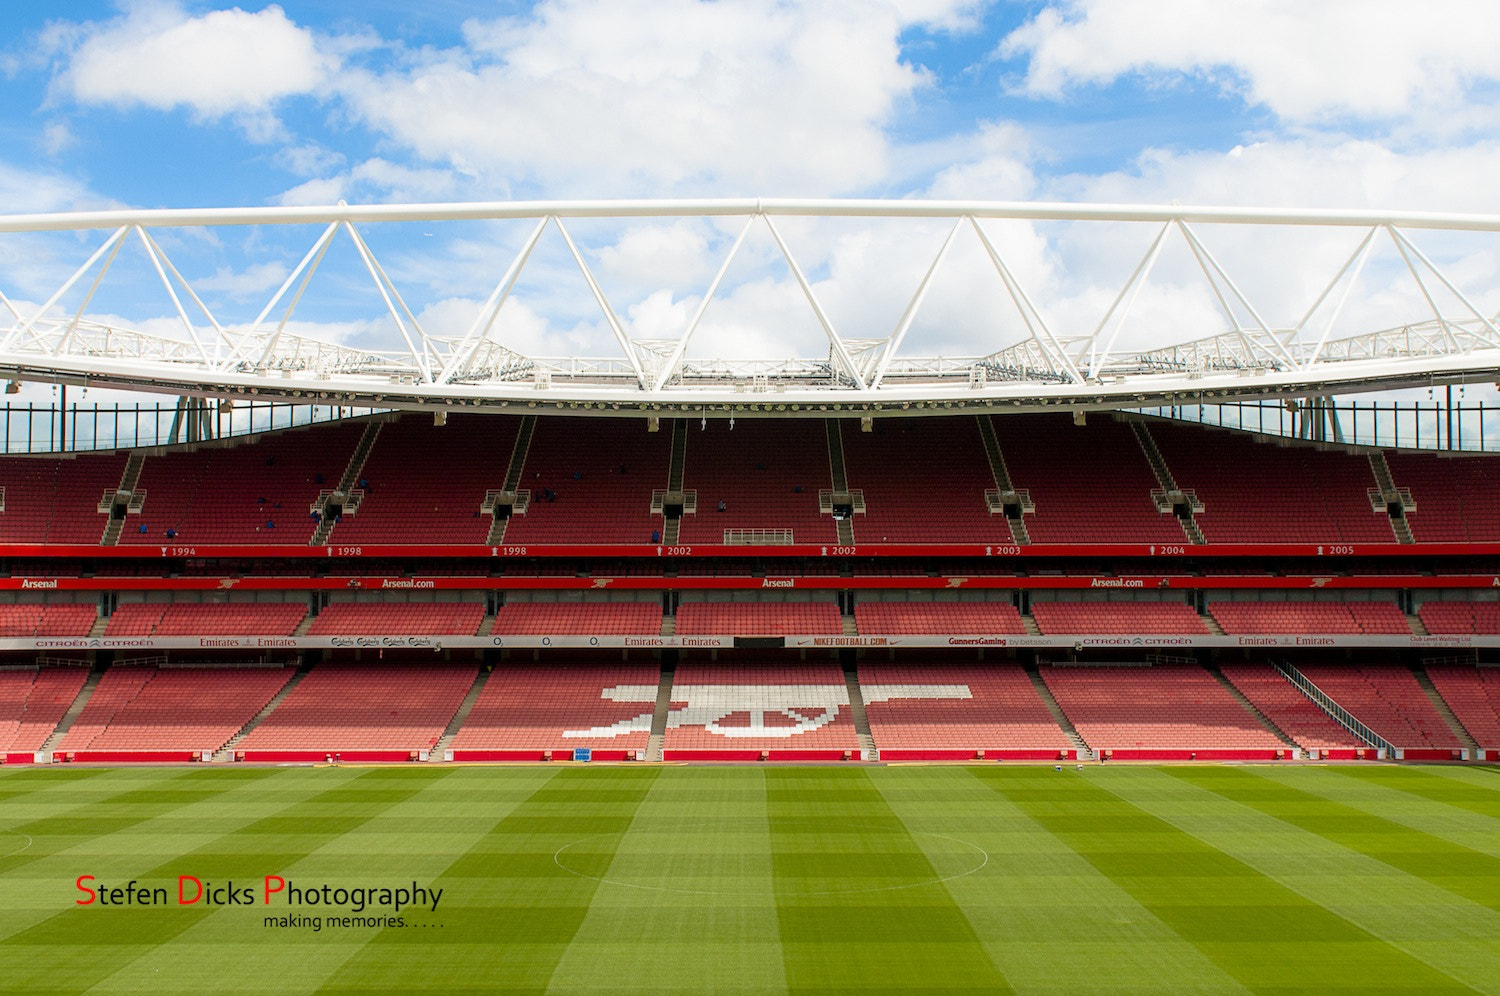 Photograph The Emirates Stadium, London. by Stefen Dicks on 500px